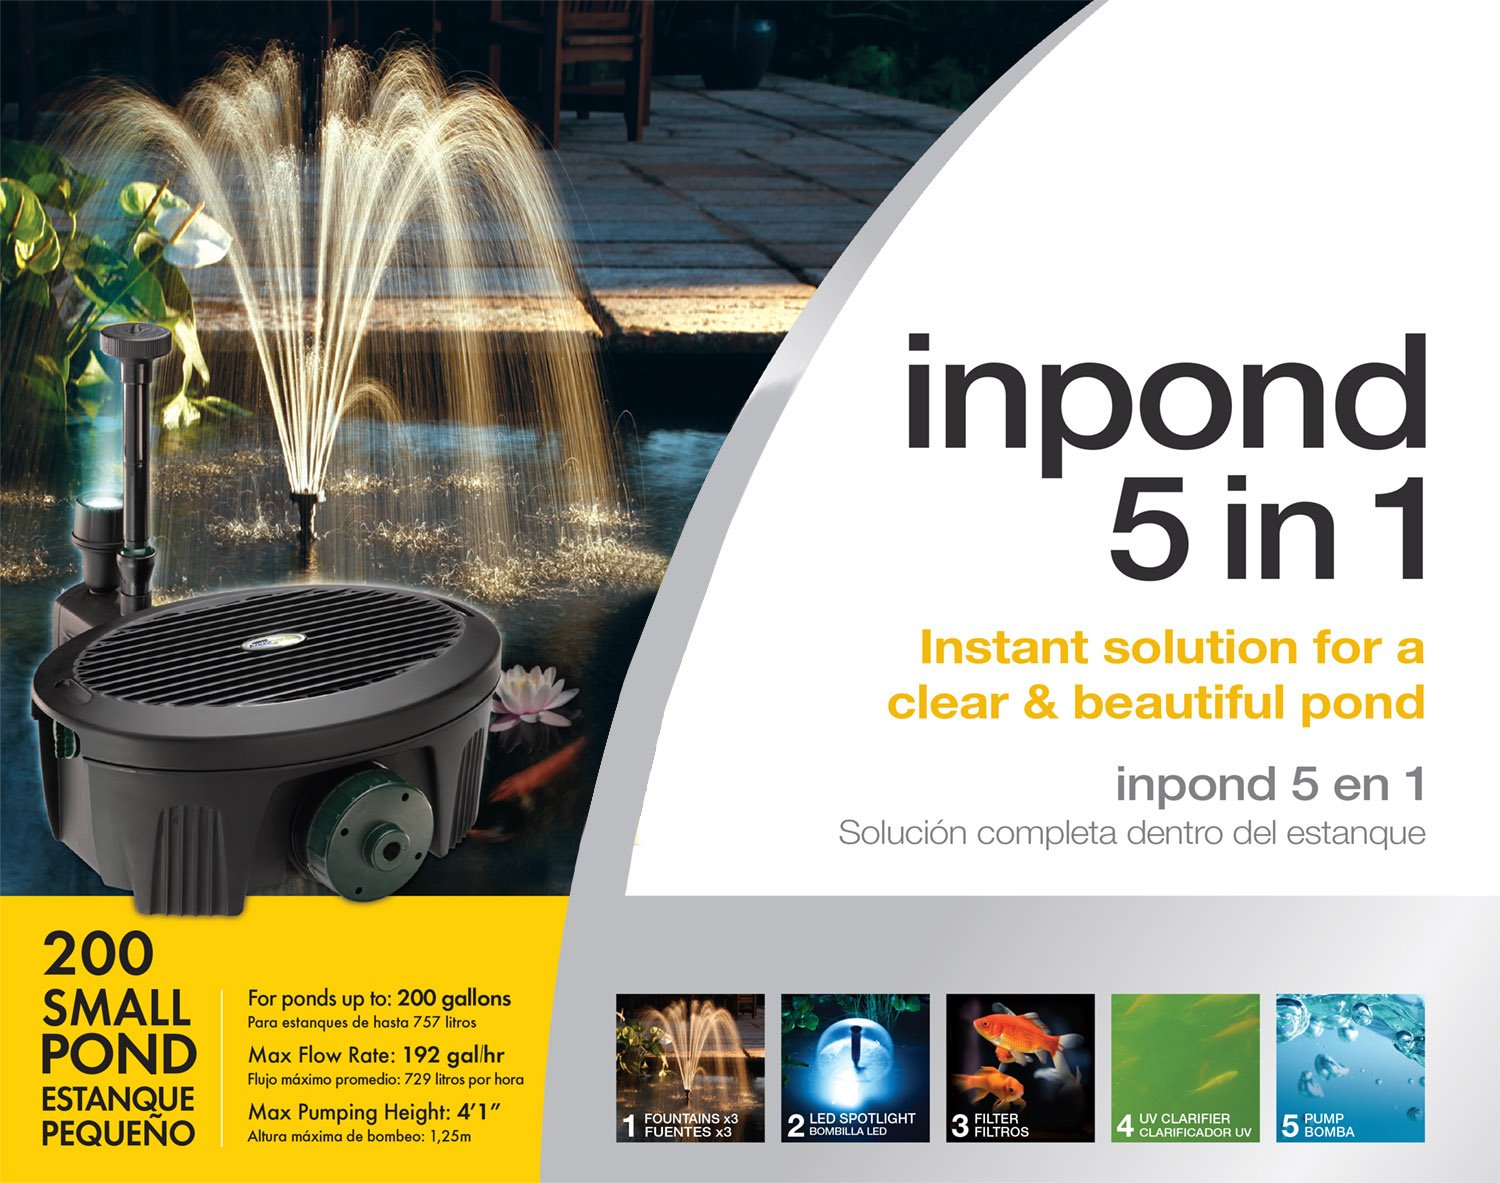 Amazon.com: Aquagarden Pennington, Inpond 5 in 1, Pond Pump, Filter, Uv Clarifier, LED Spotlight & Fountain, All in One Solution for A Clear & Beautiful ...